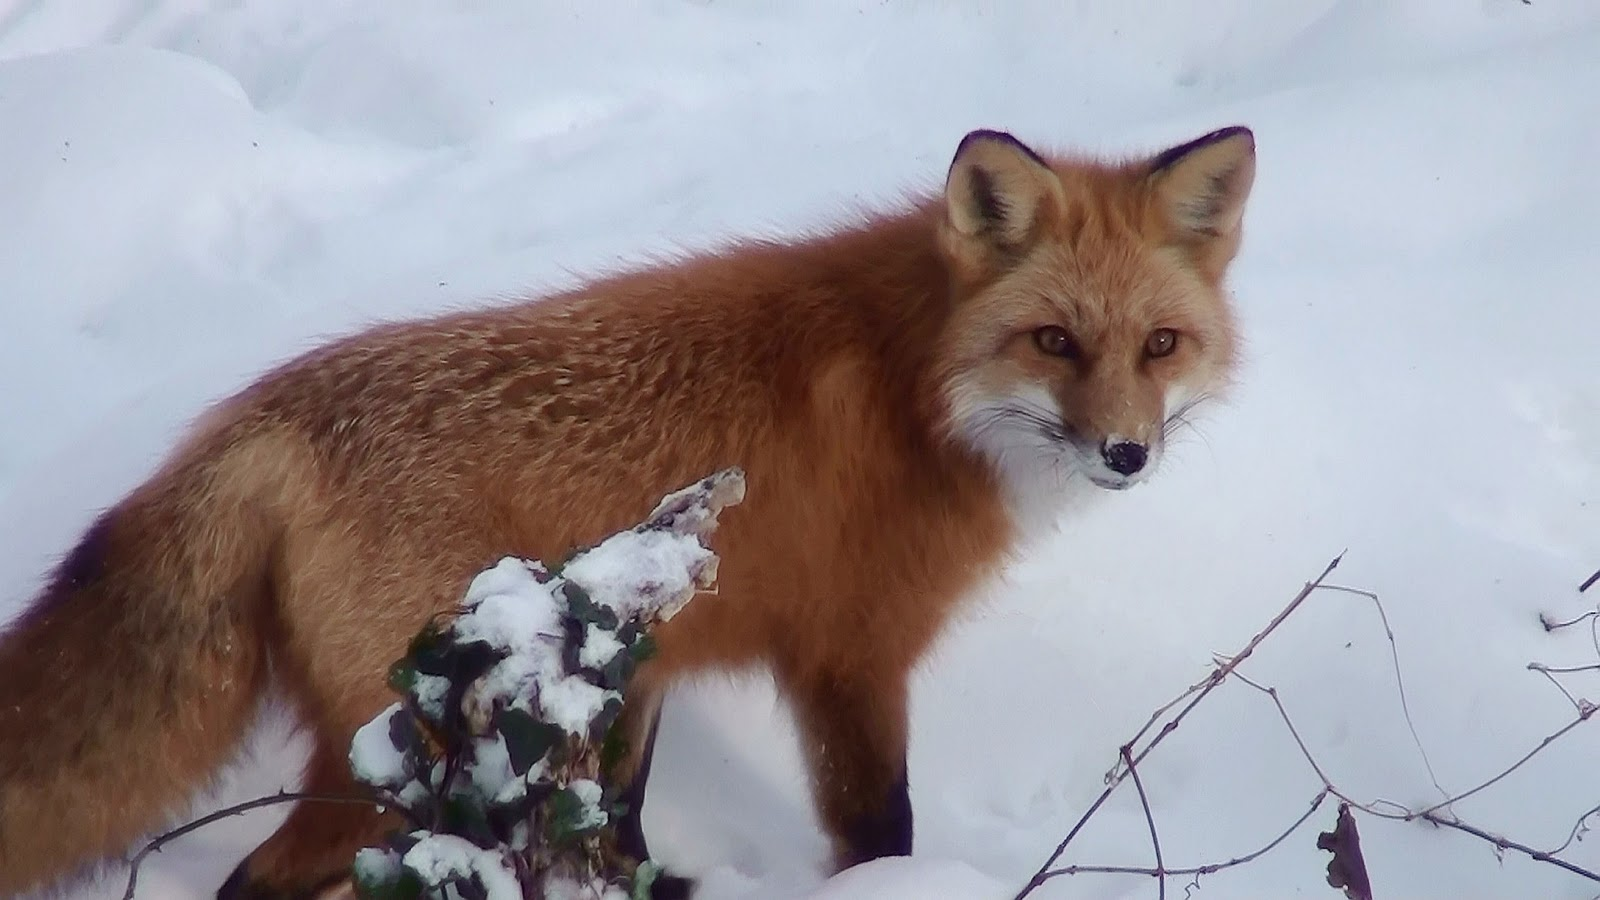 Red Fox (Vulpes vulpes). | PARENTS ALLIANCE OF PRINCE GEORGE'S COUNTY, MARYLAND